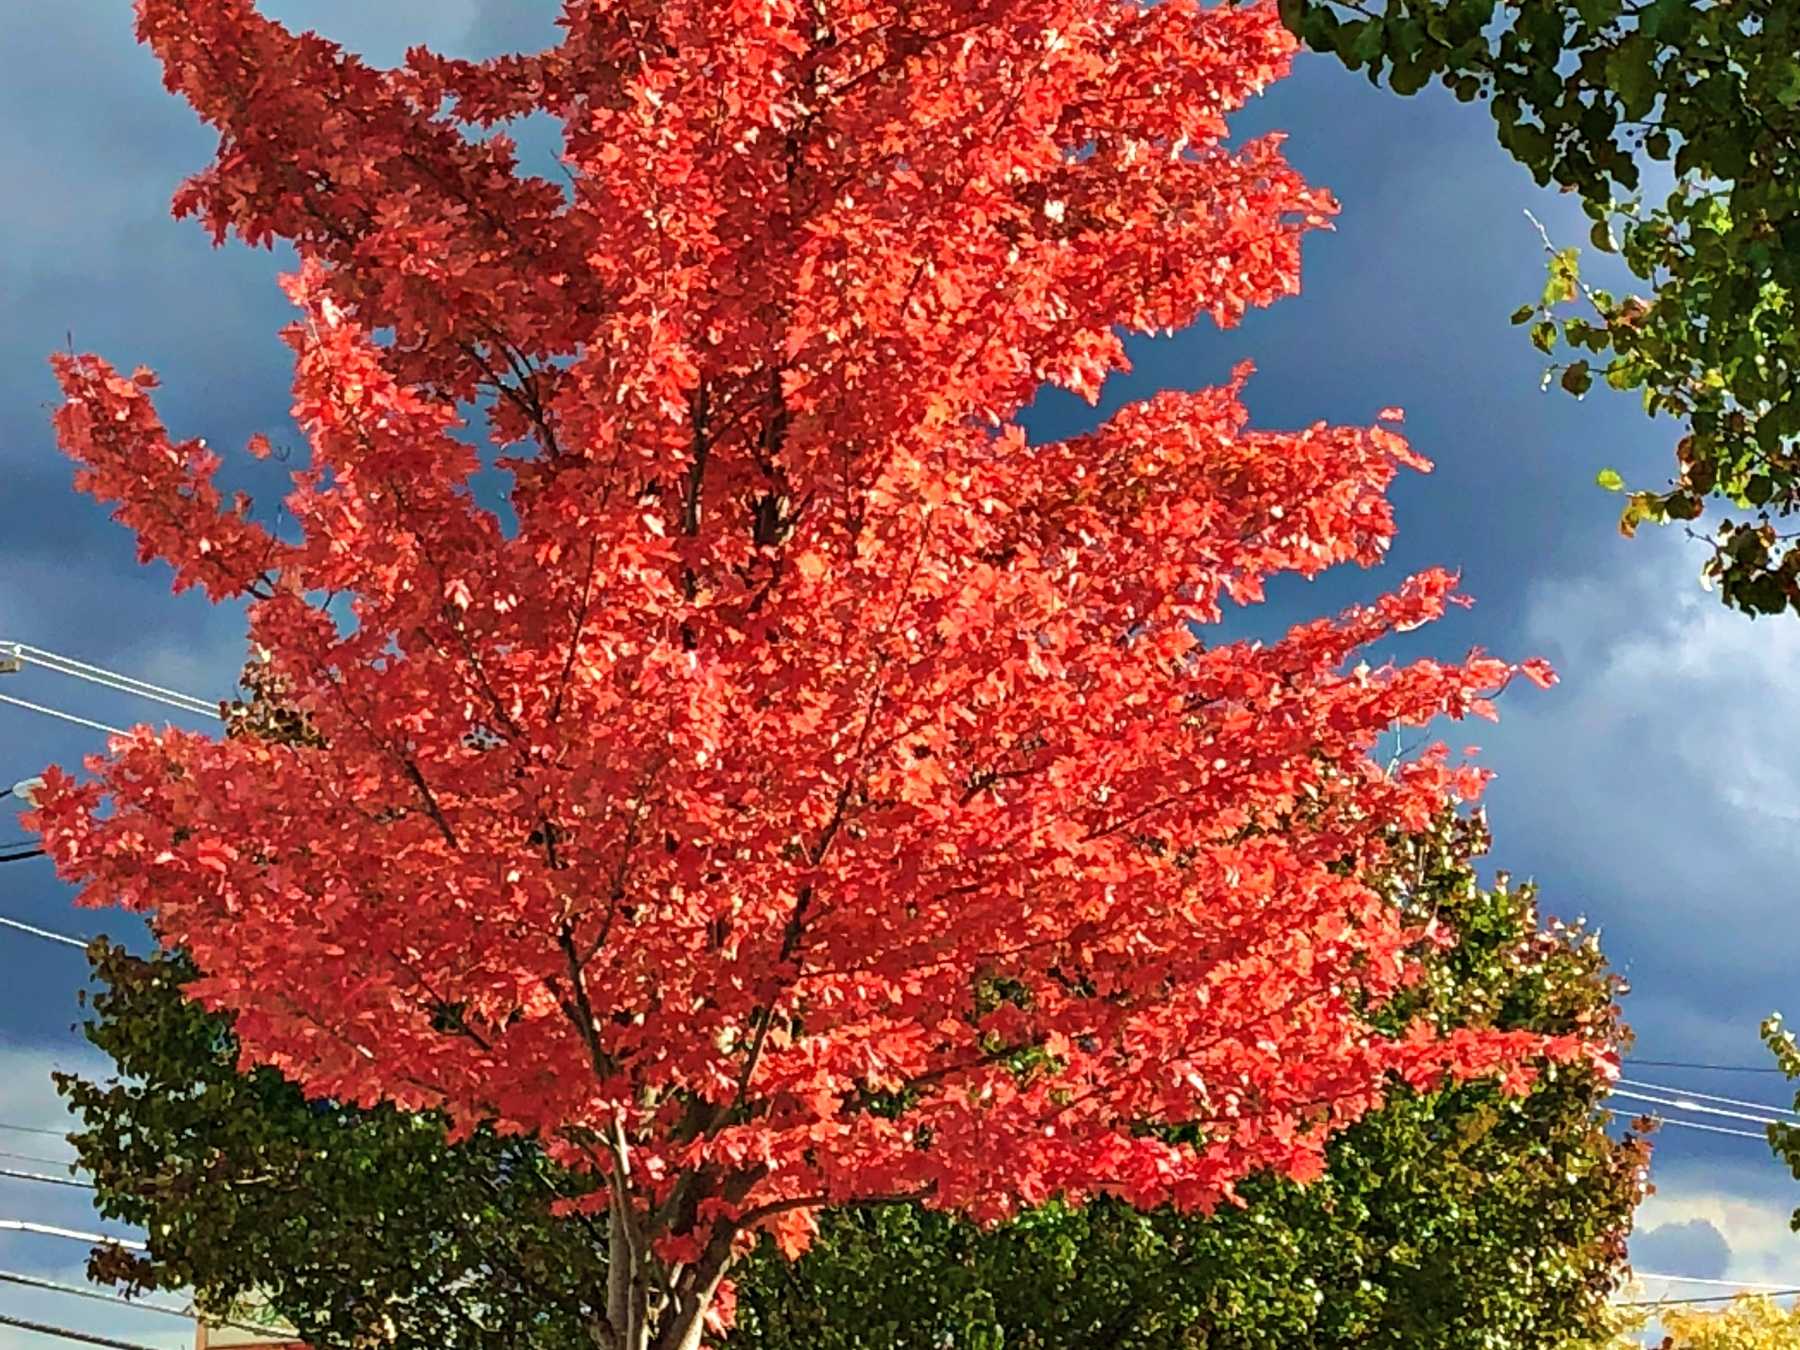 A tree with bright red leaves in fall in the Hudson Valley